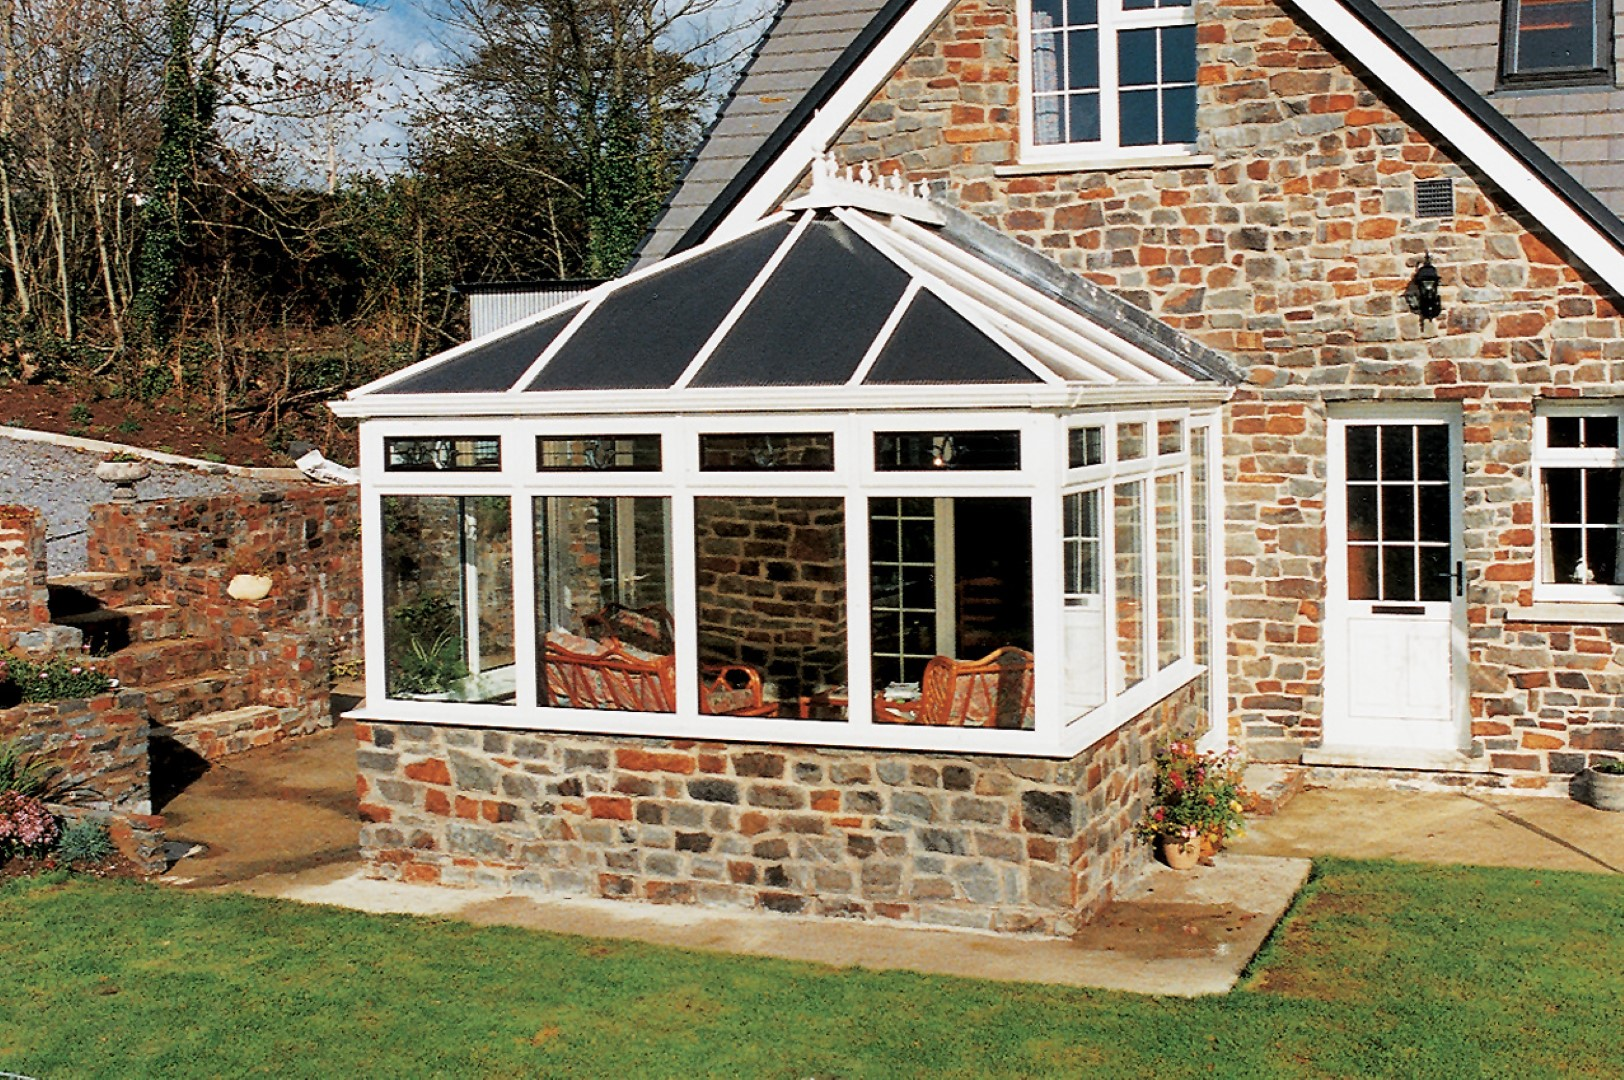 White PVCU with polycarbonate roof